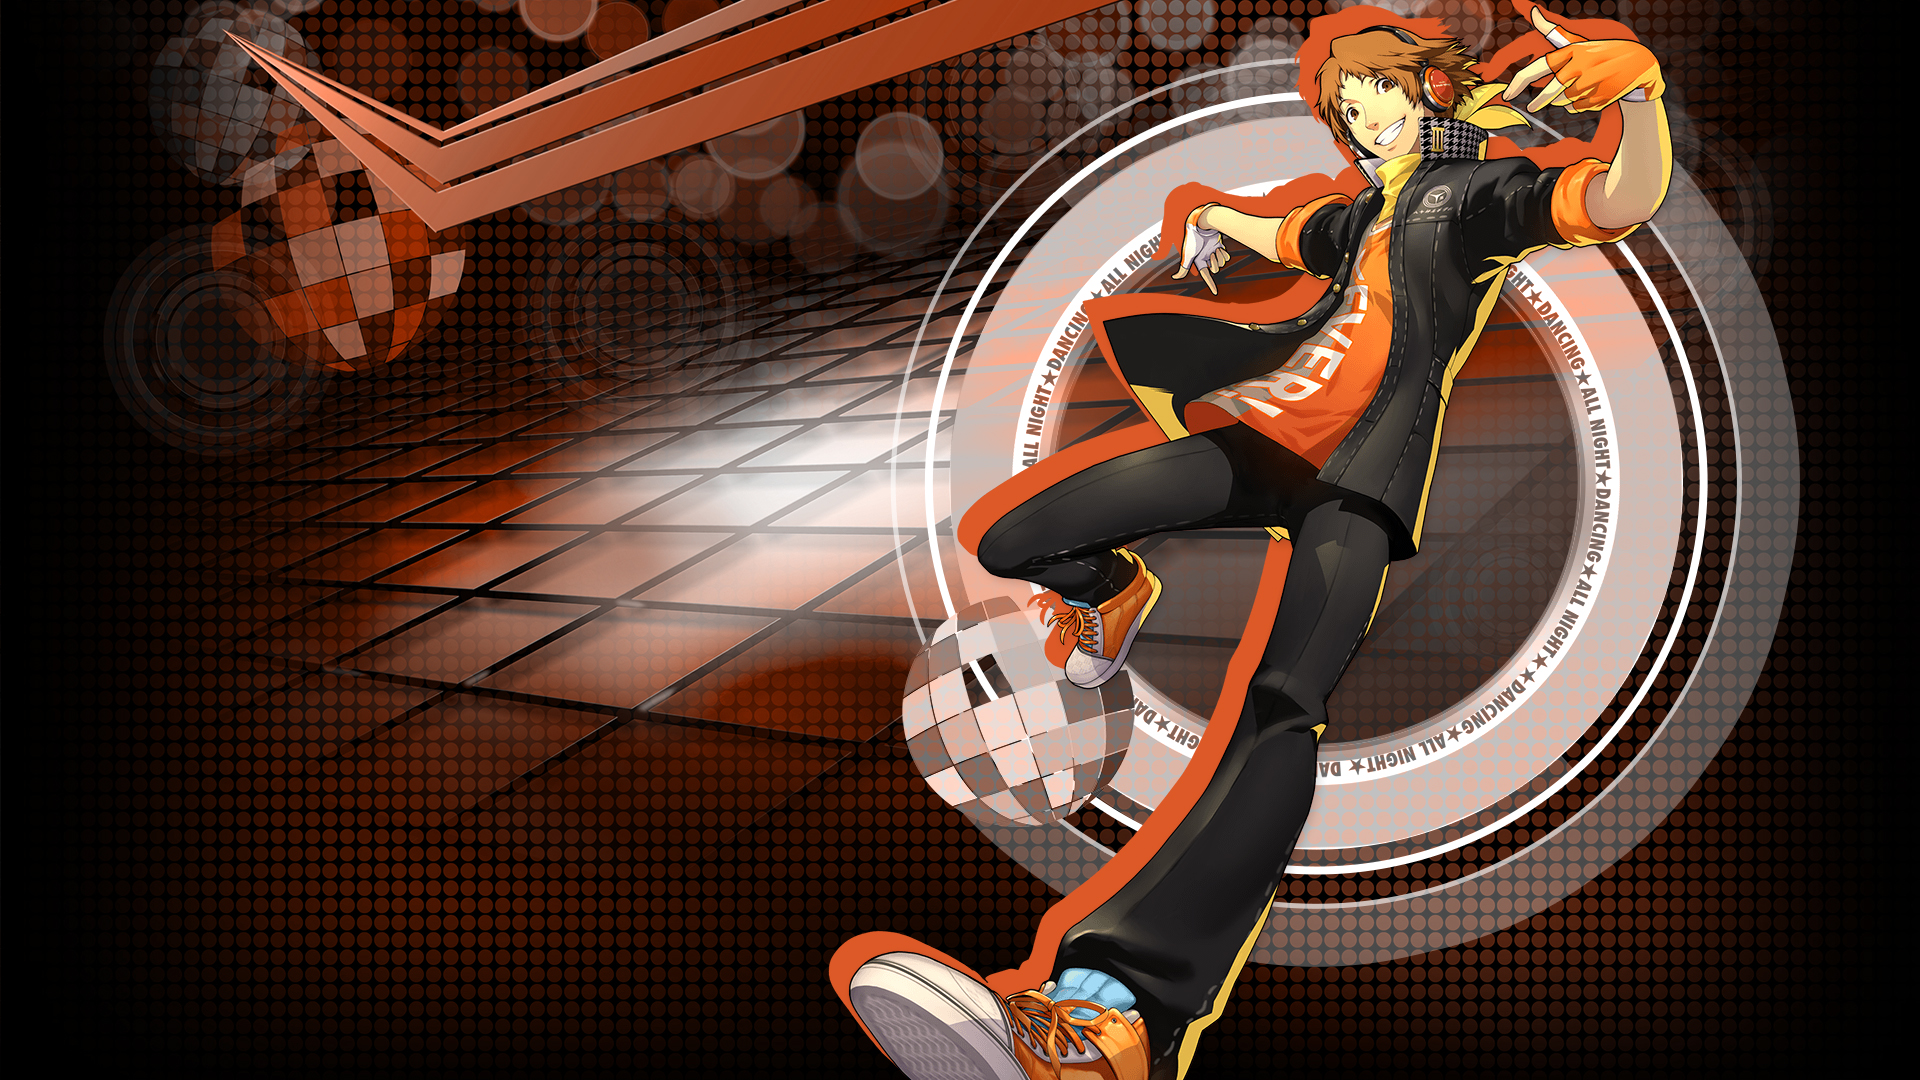 Persona 4 Dancing All Night Yosuke Hanamura Hd Wallpaper